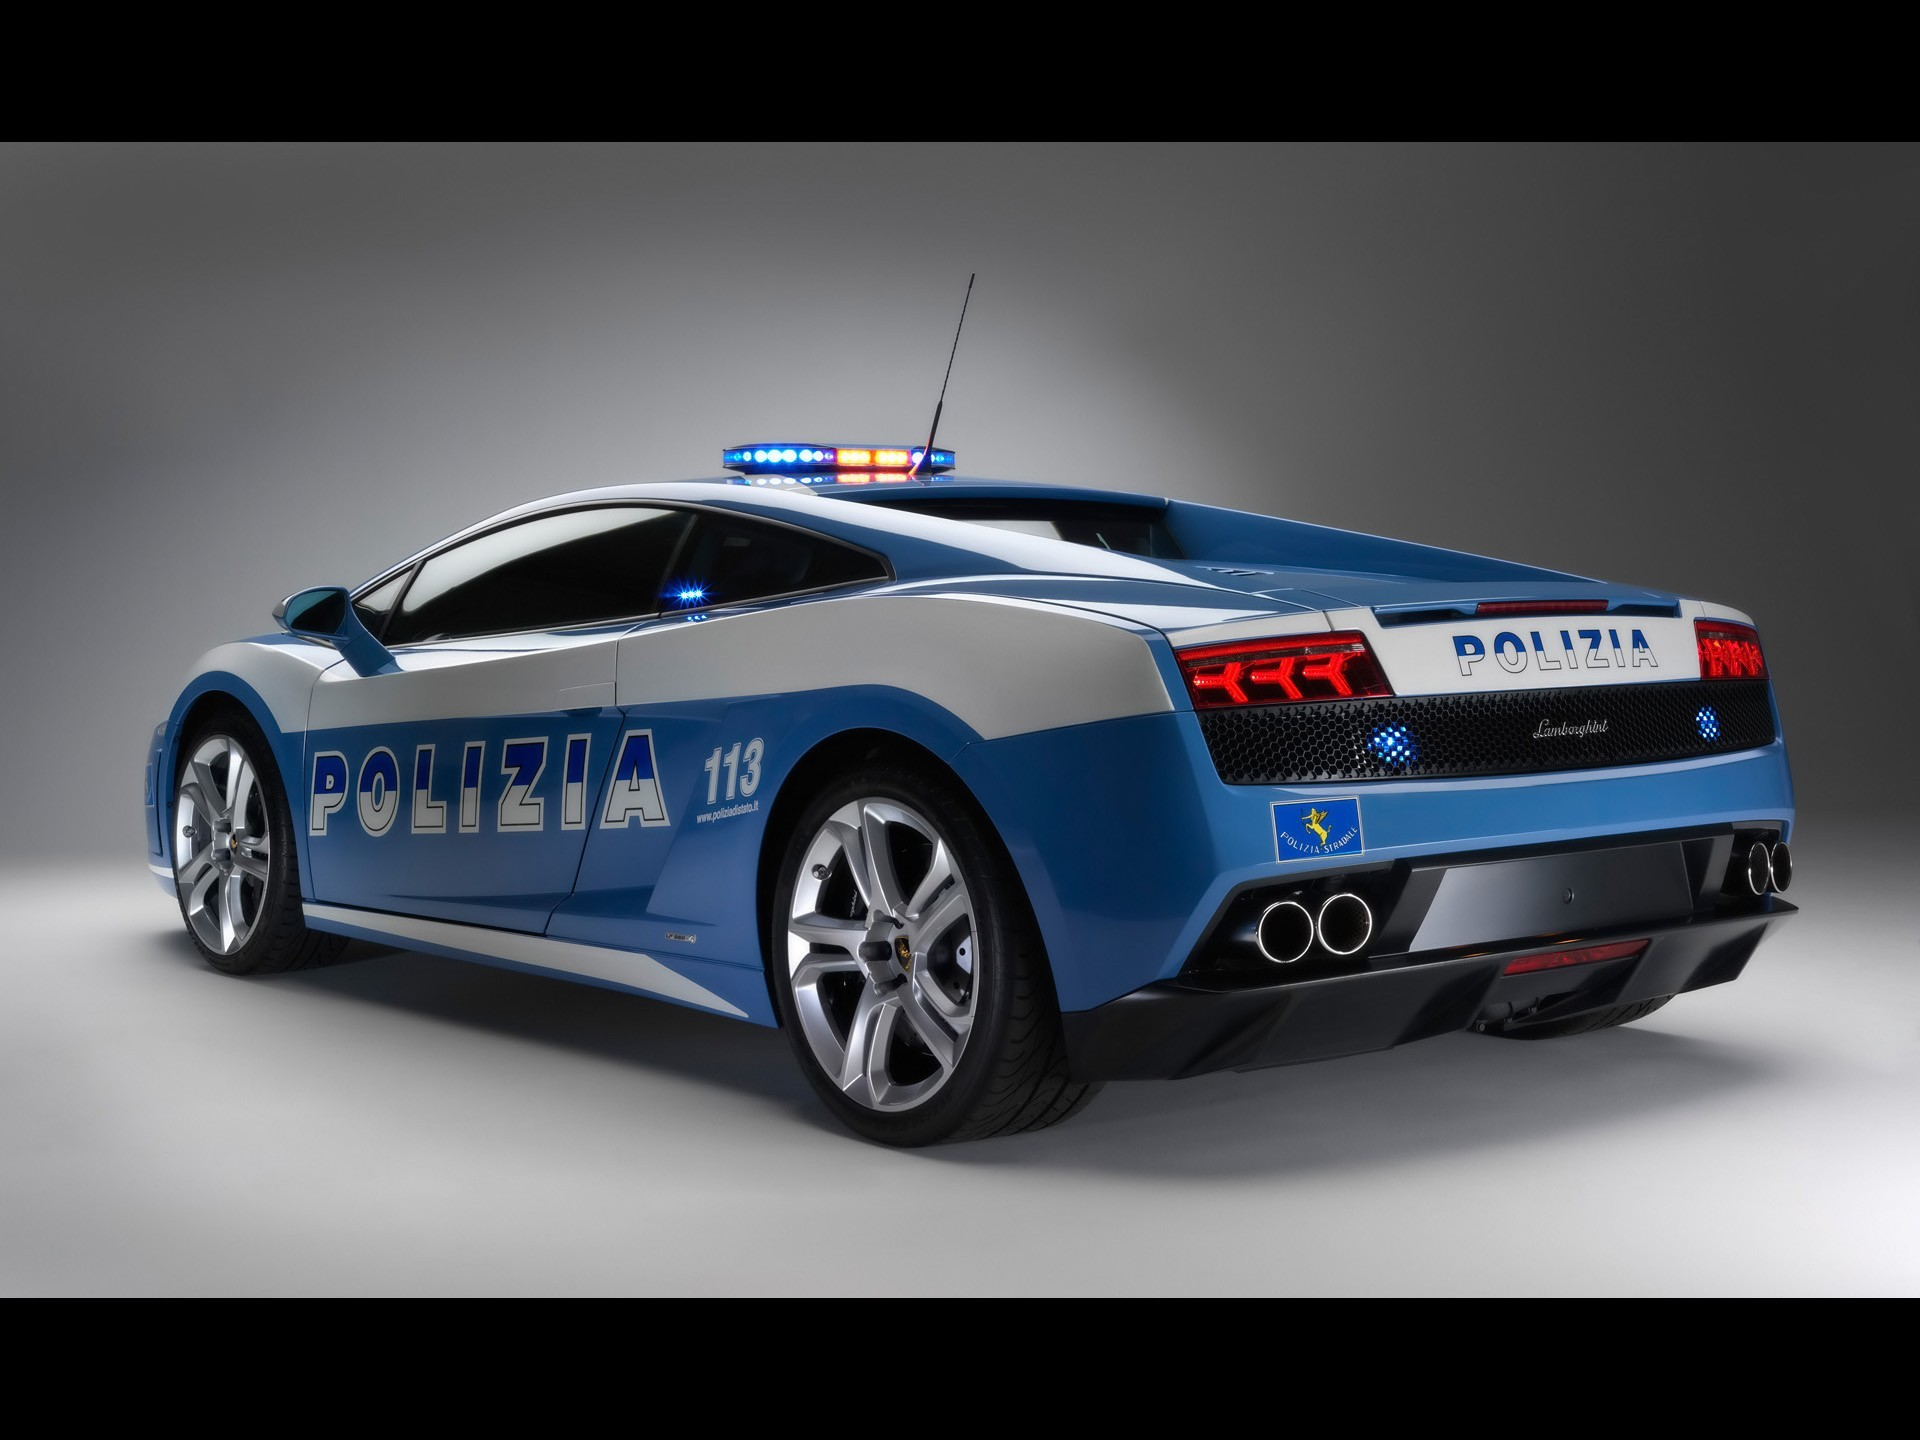 cars police Lamborghini back HD Wallpaper